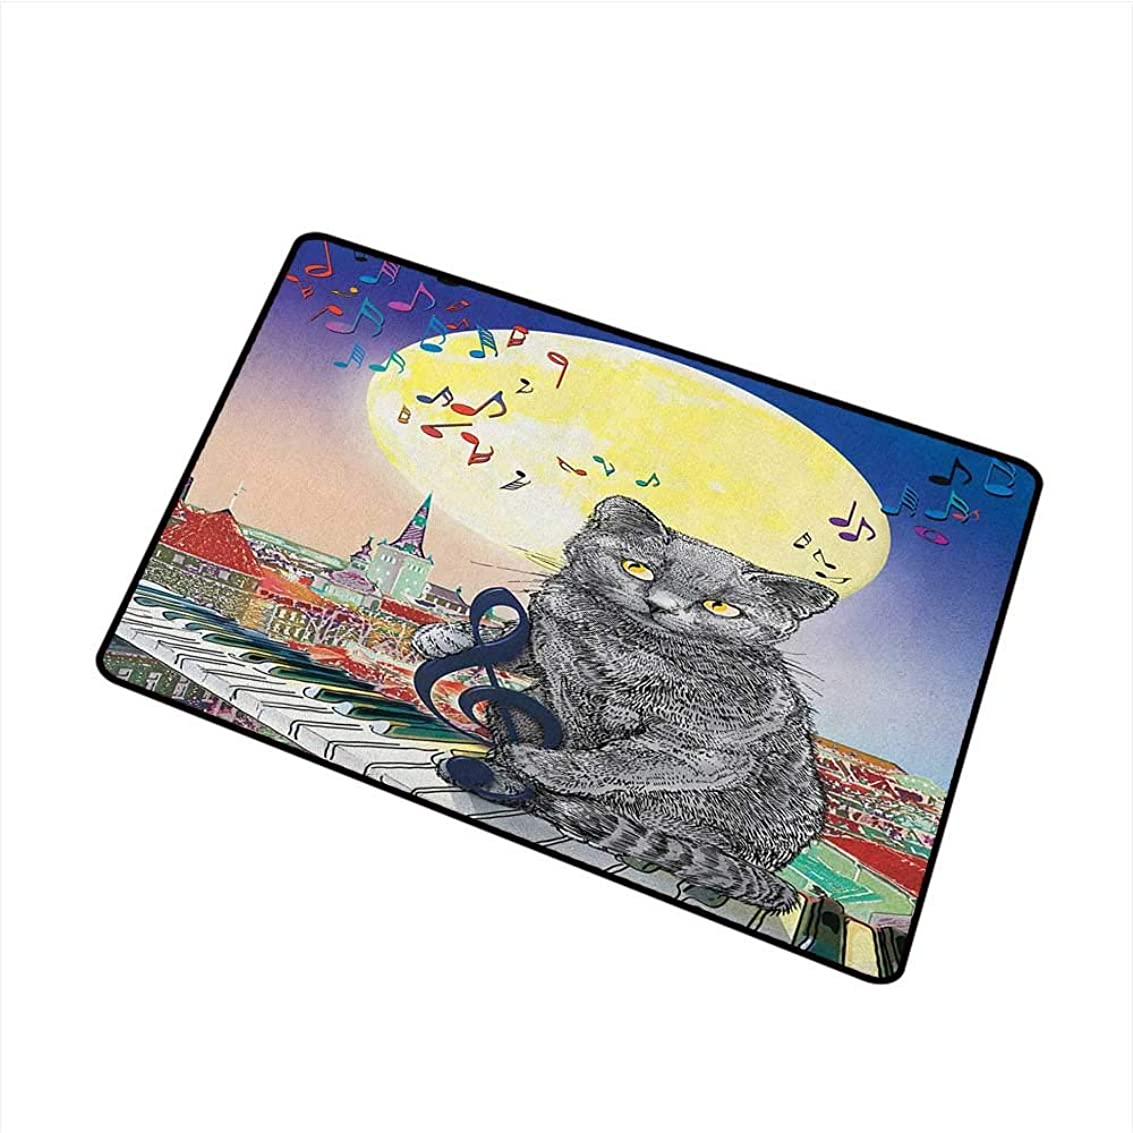 Wang Hai Chuan City Welcome Door mat Musical Notes Cat with The Keyboard on Rooftops in Night Sky Old Town Full Moon Art Print Door mat is odorless and Durable W15.7 x L23.6 Inch Multi calik7167529067